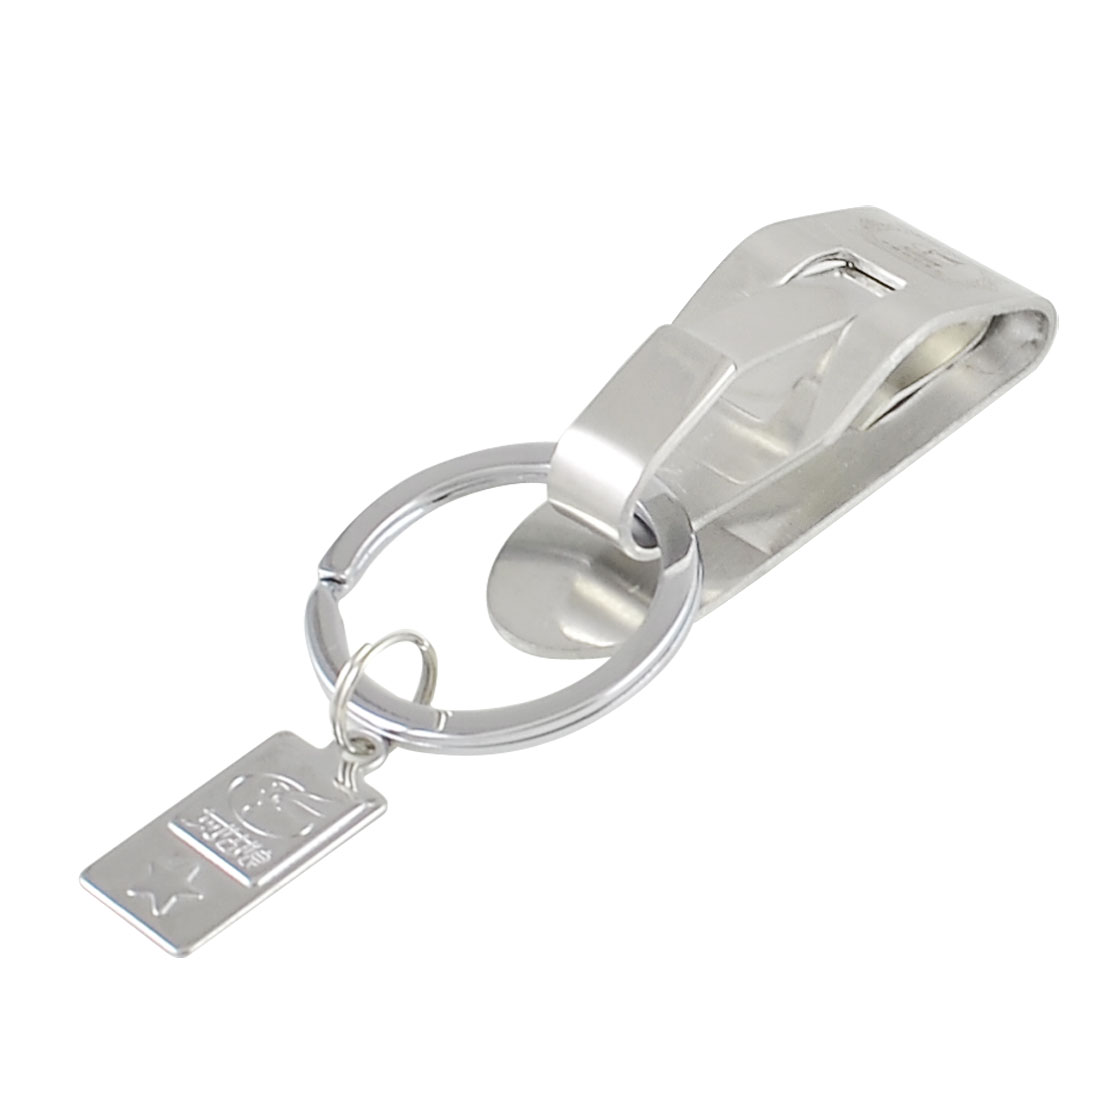 Silver Tone Belt Hook Clip Polished Single Split Ring Keyring Key Holder